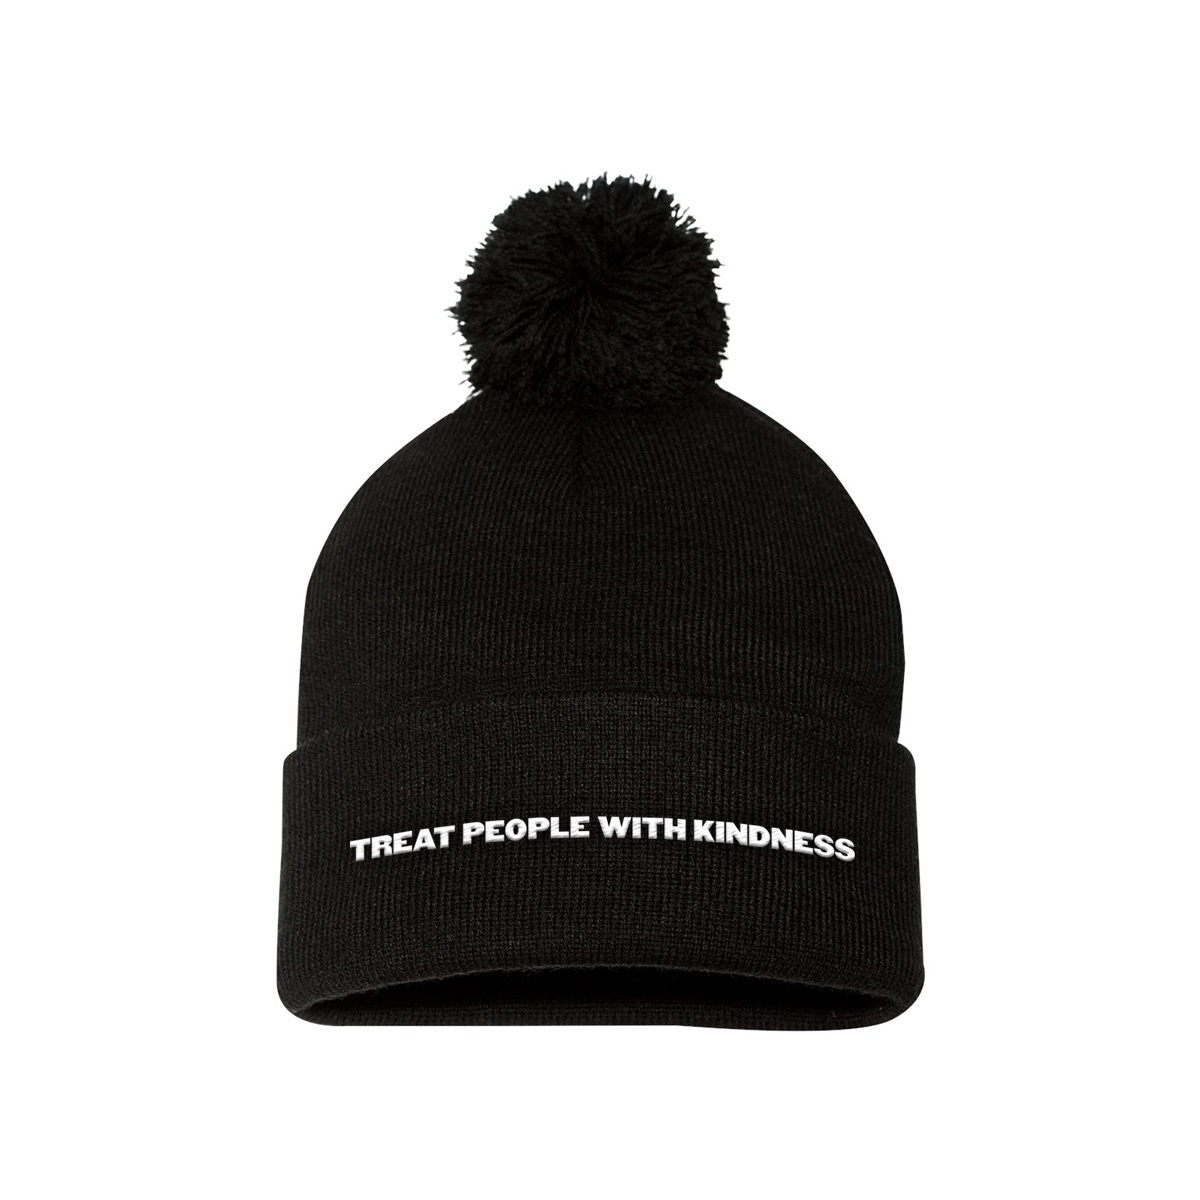 Treat People With Kindness Pom Beanie - Harry Styles EU